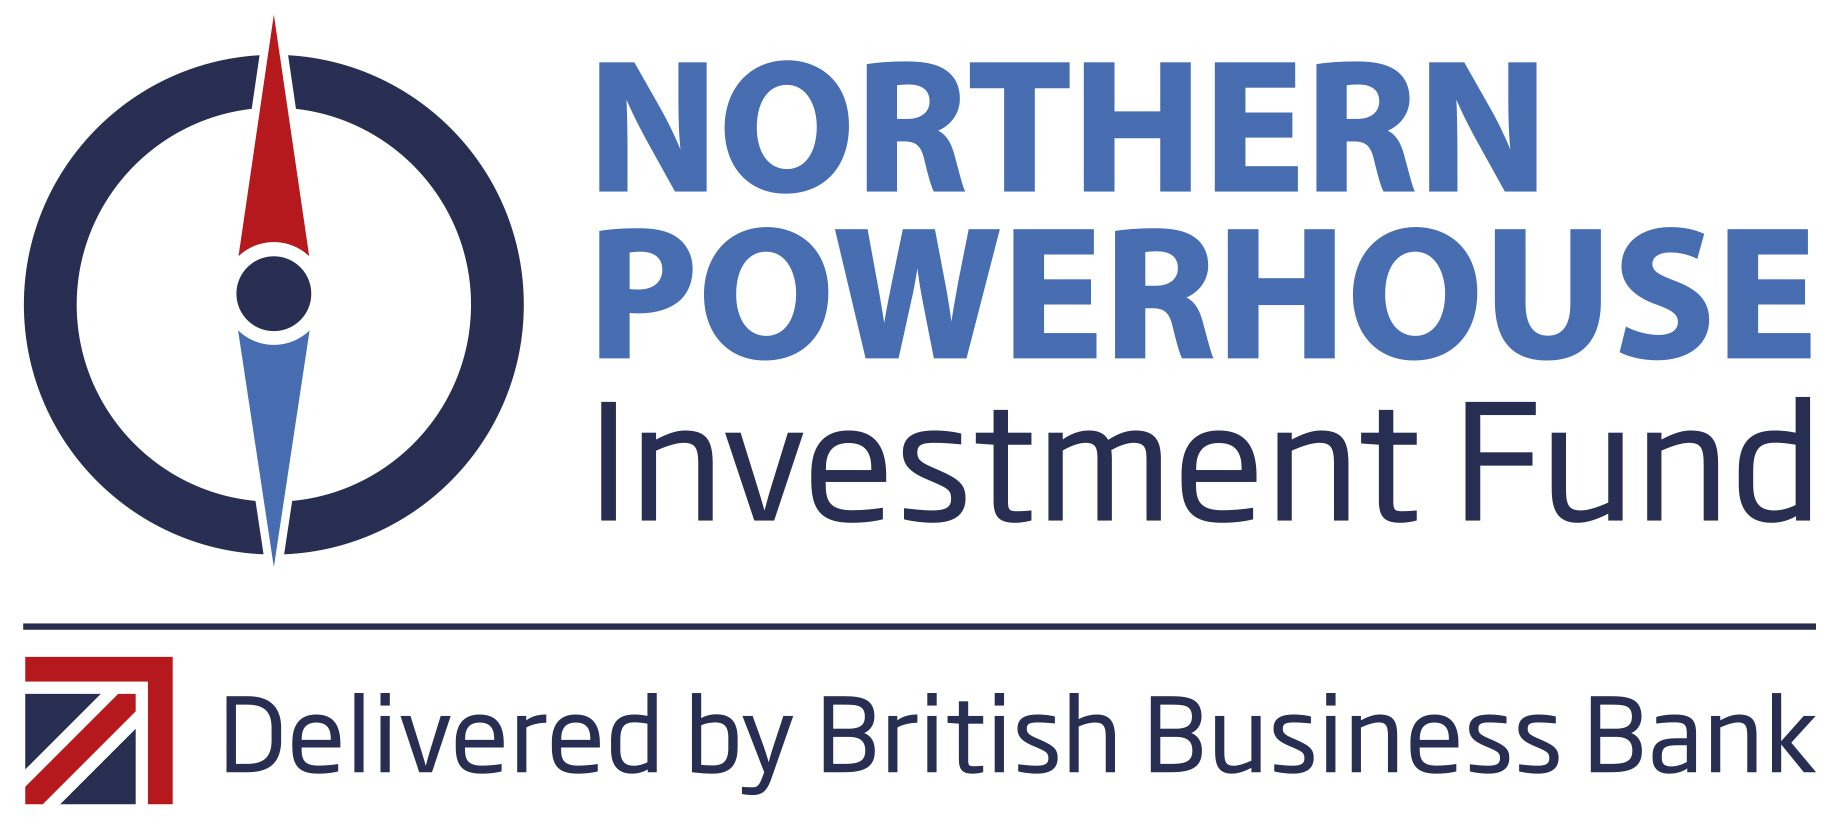 Northern Powerhouse Investment Fund (NPIF) Logo